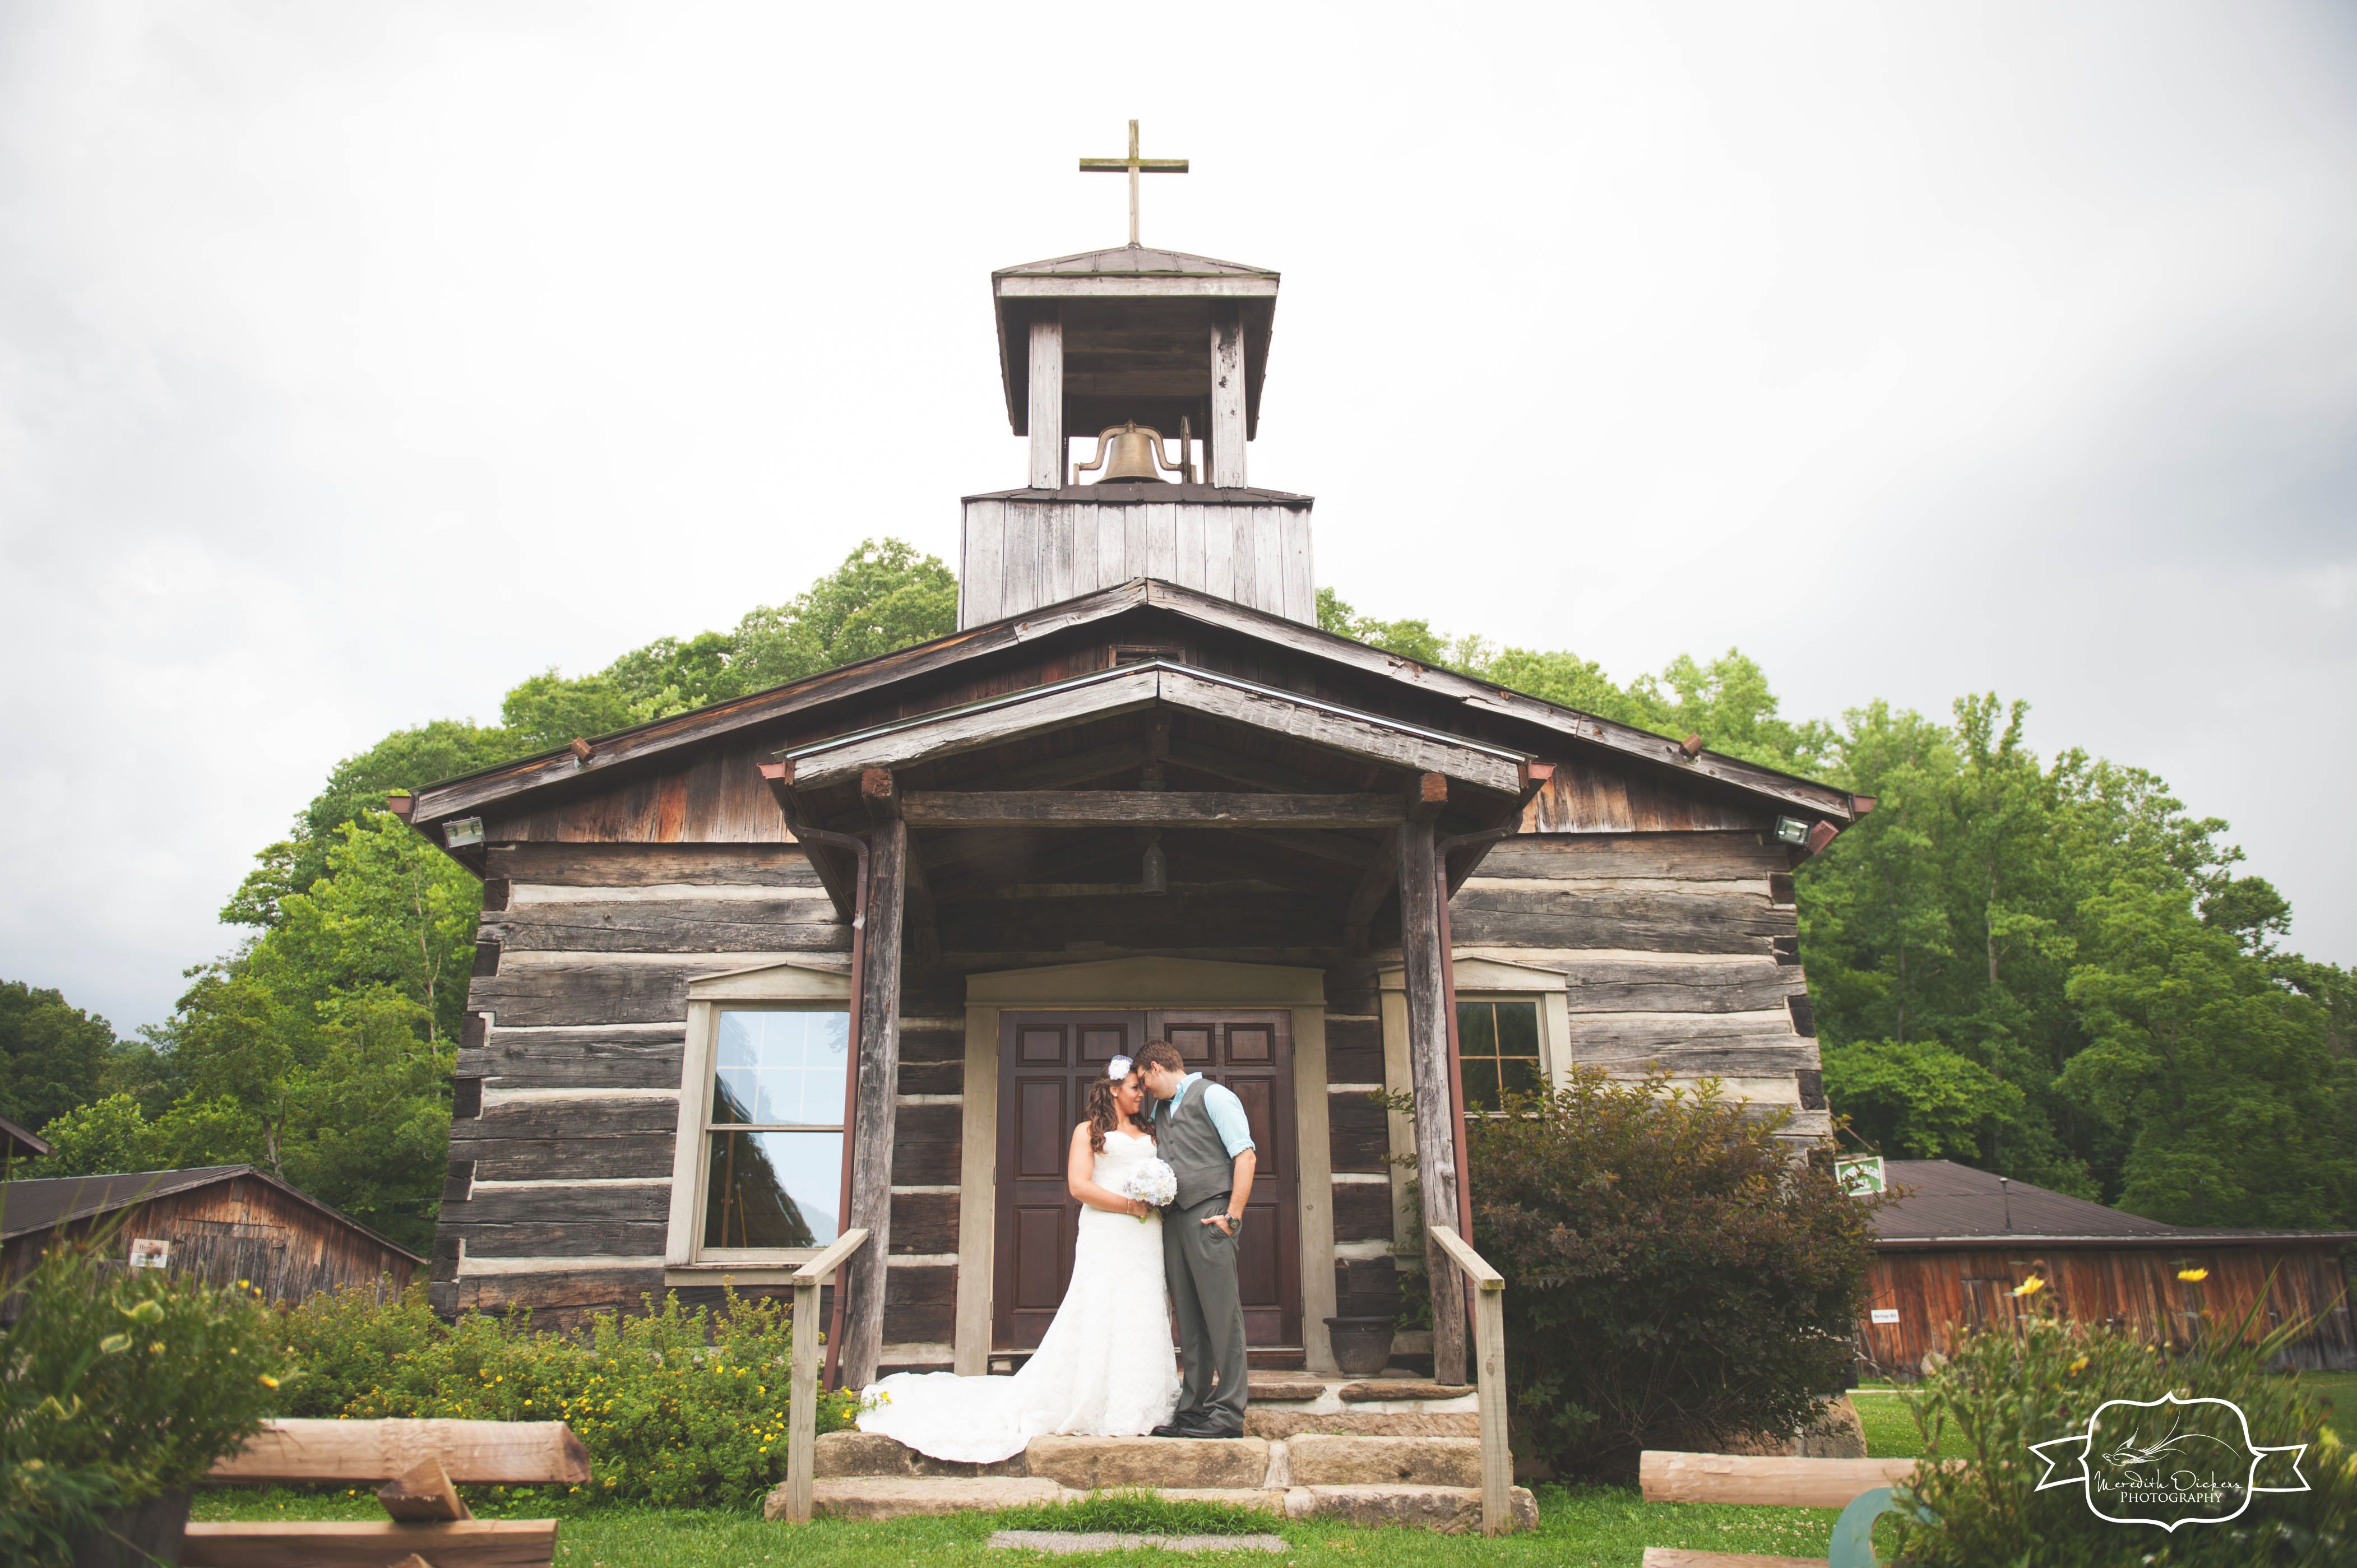 Rustic Wedding Photography Heritage Farm And Village Huntington WV Mdickensphotography